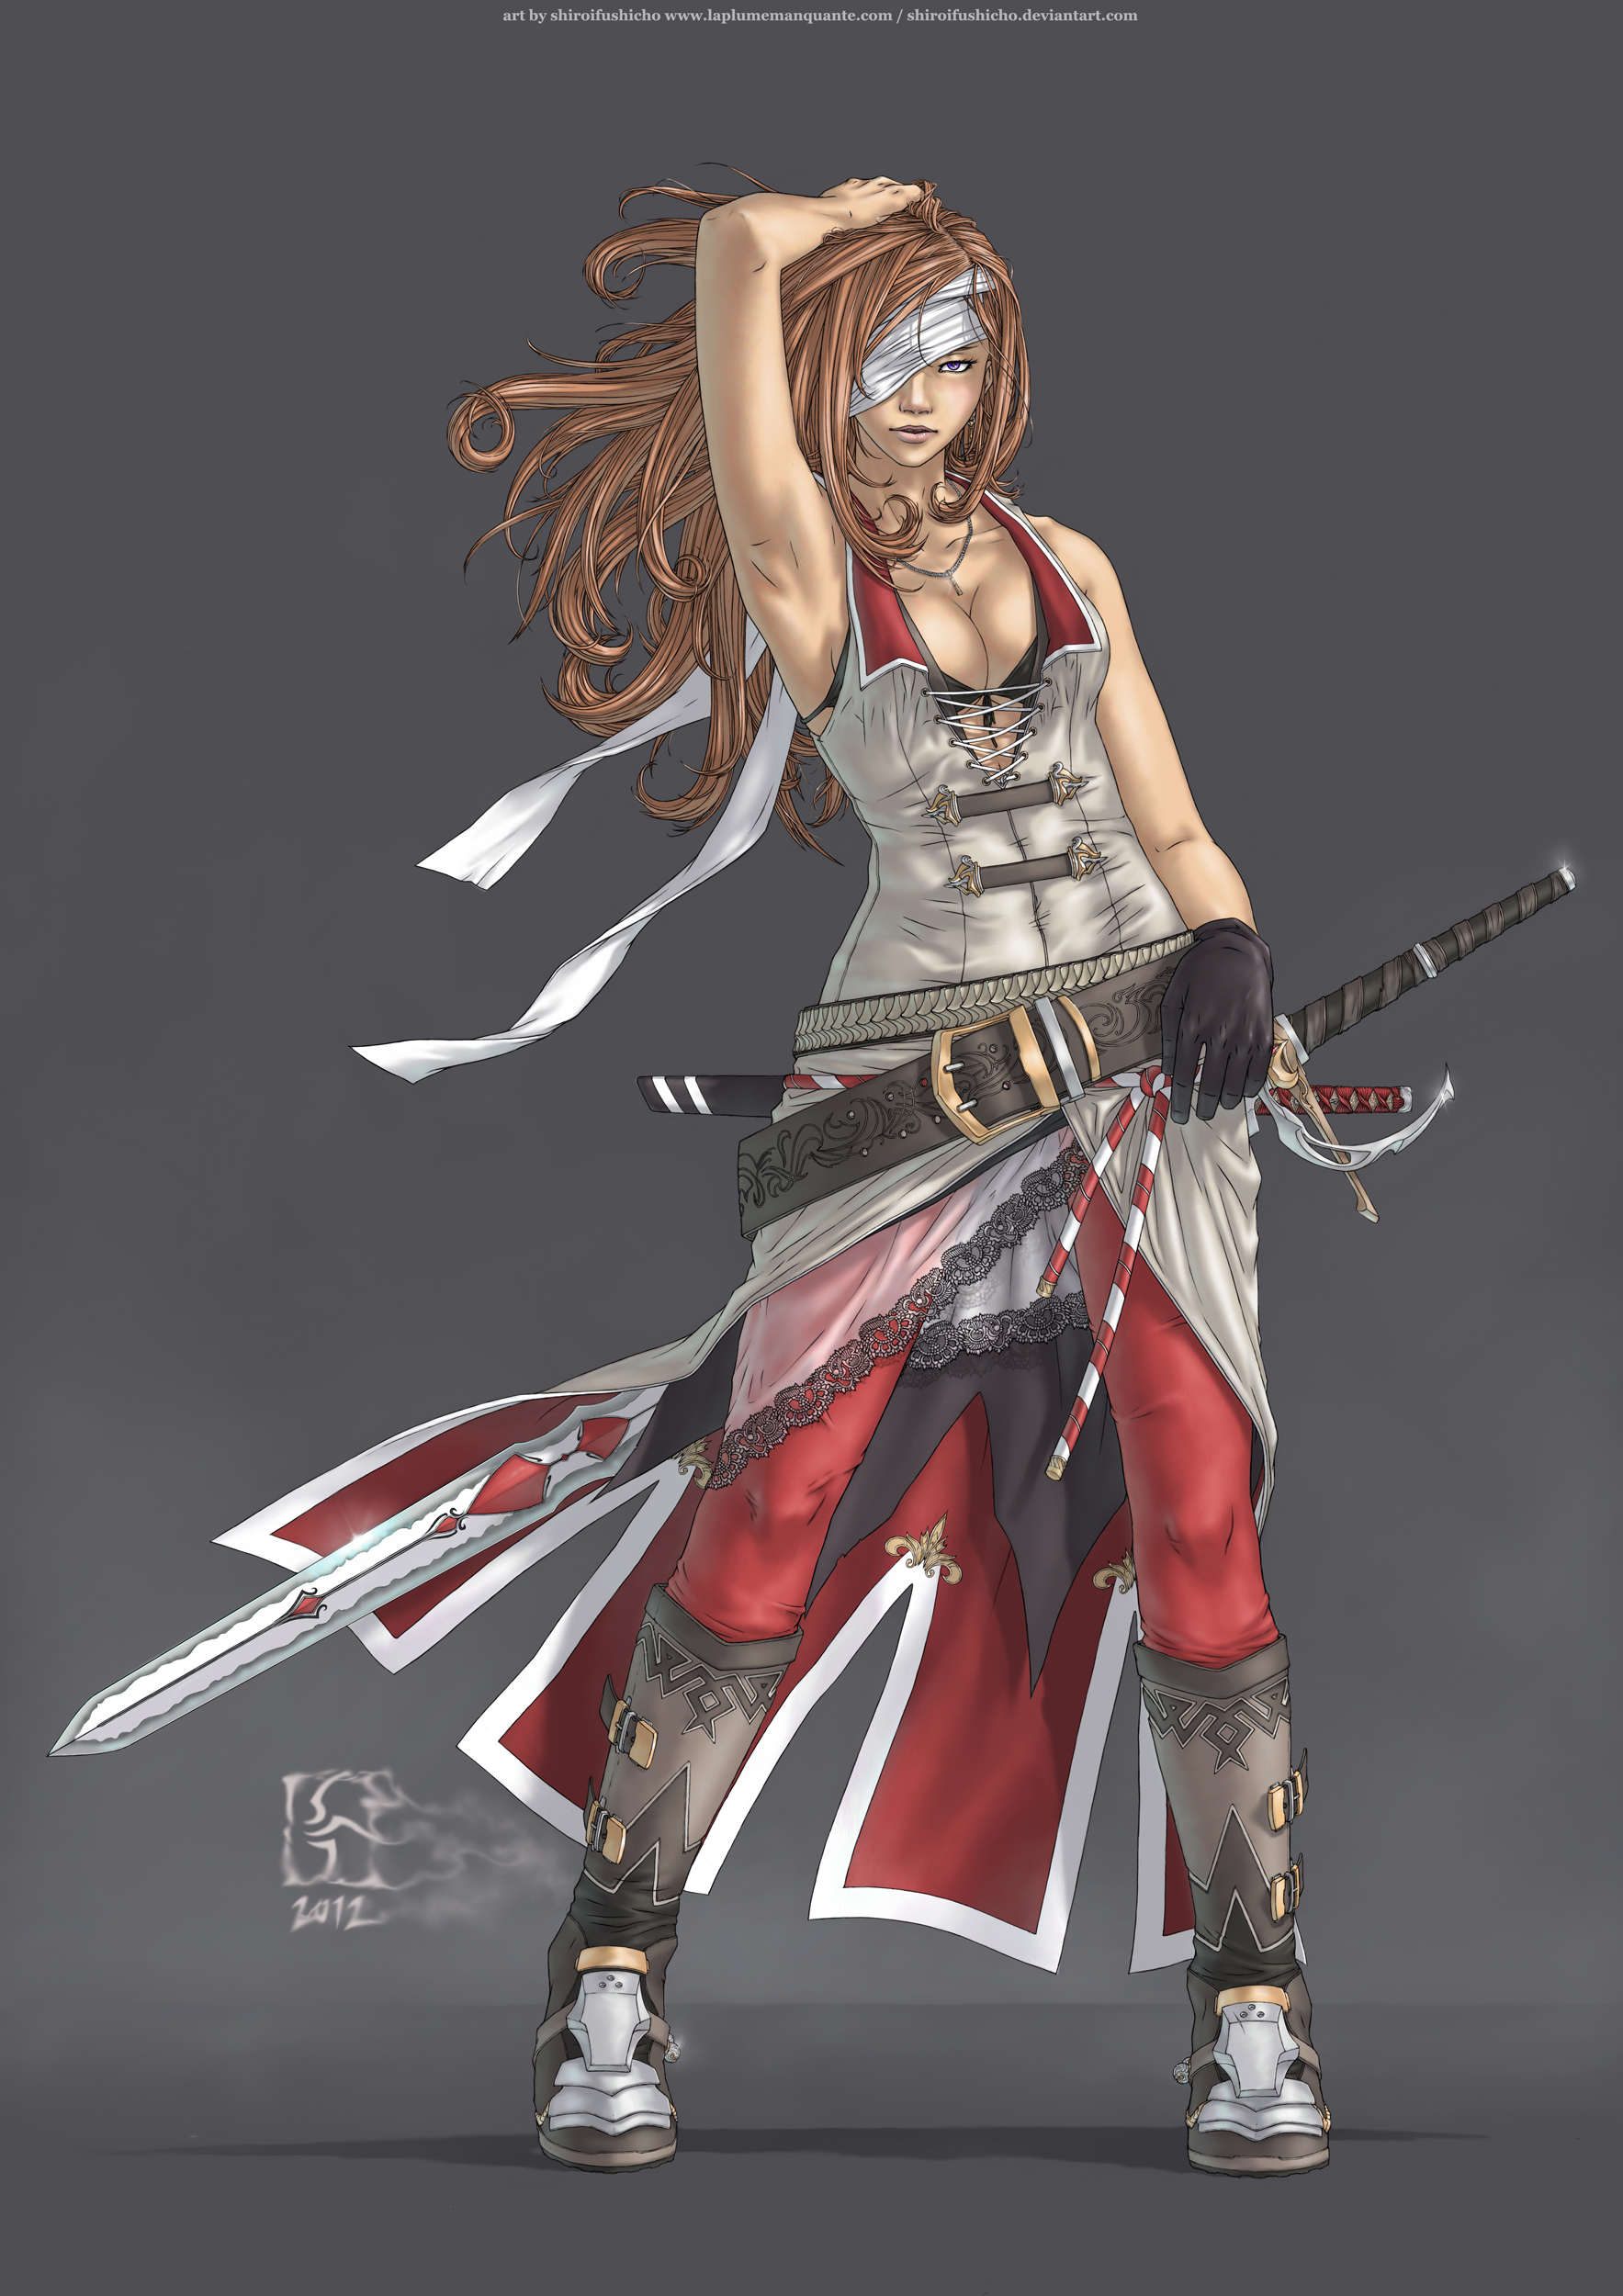 Final Fantasy Female Characters And Their Hottest Pictures ...  Final Fantasy Female Characters Wallpaper